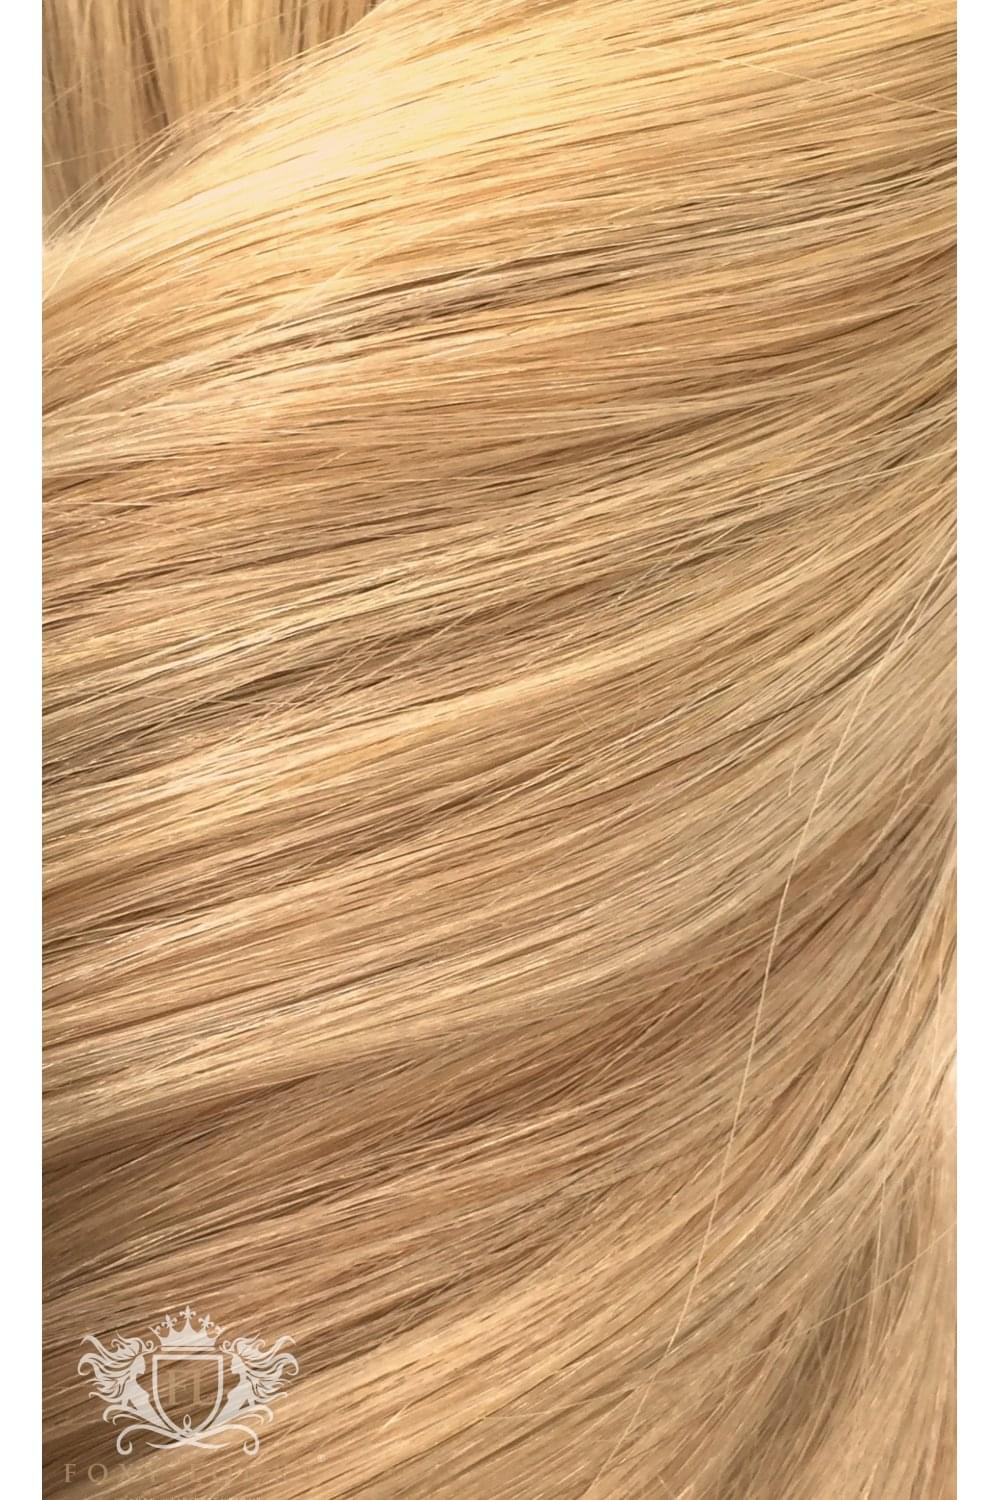 Sandy Blonde Superior Seamless 22 Clip In Human Hair Extensions 230g